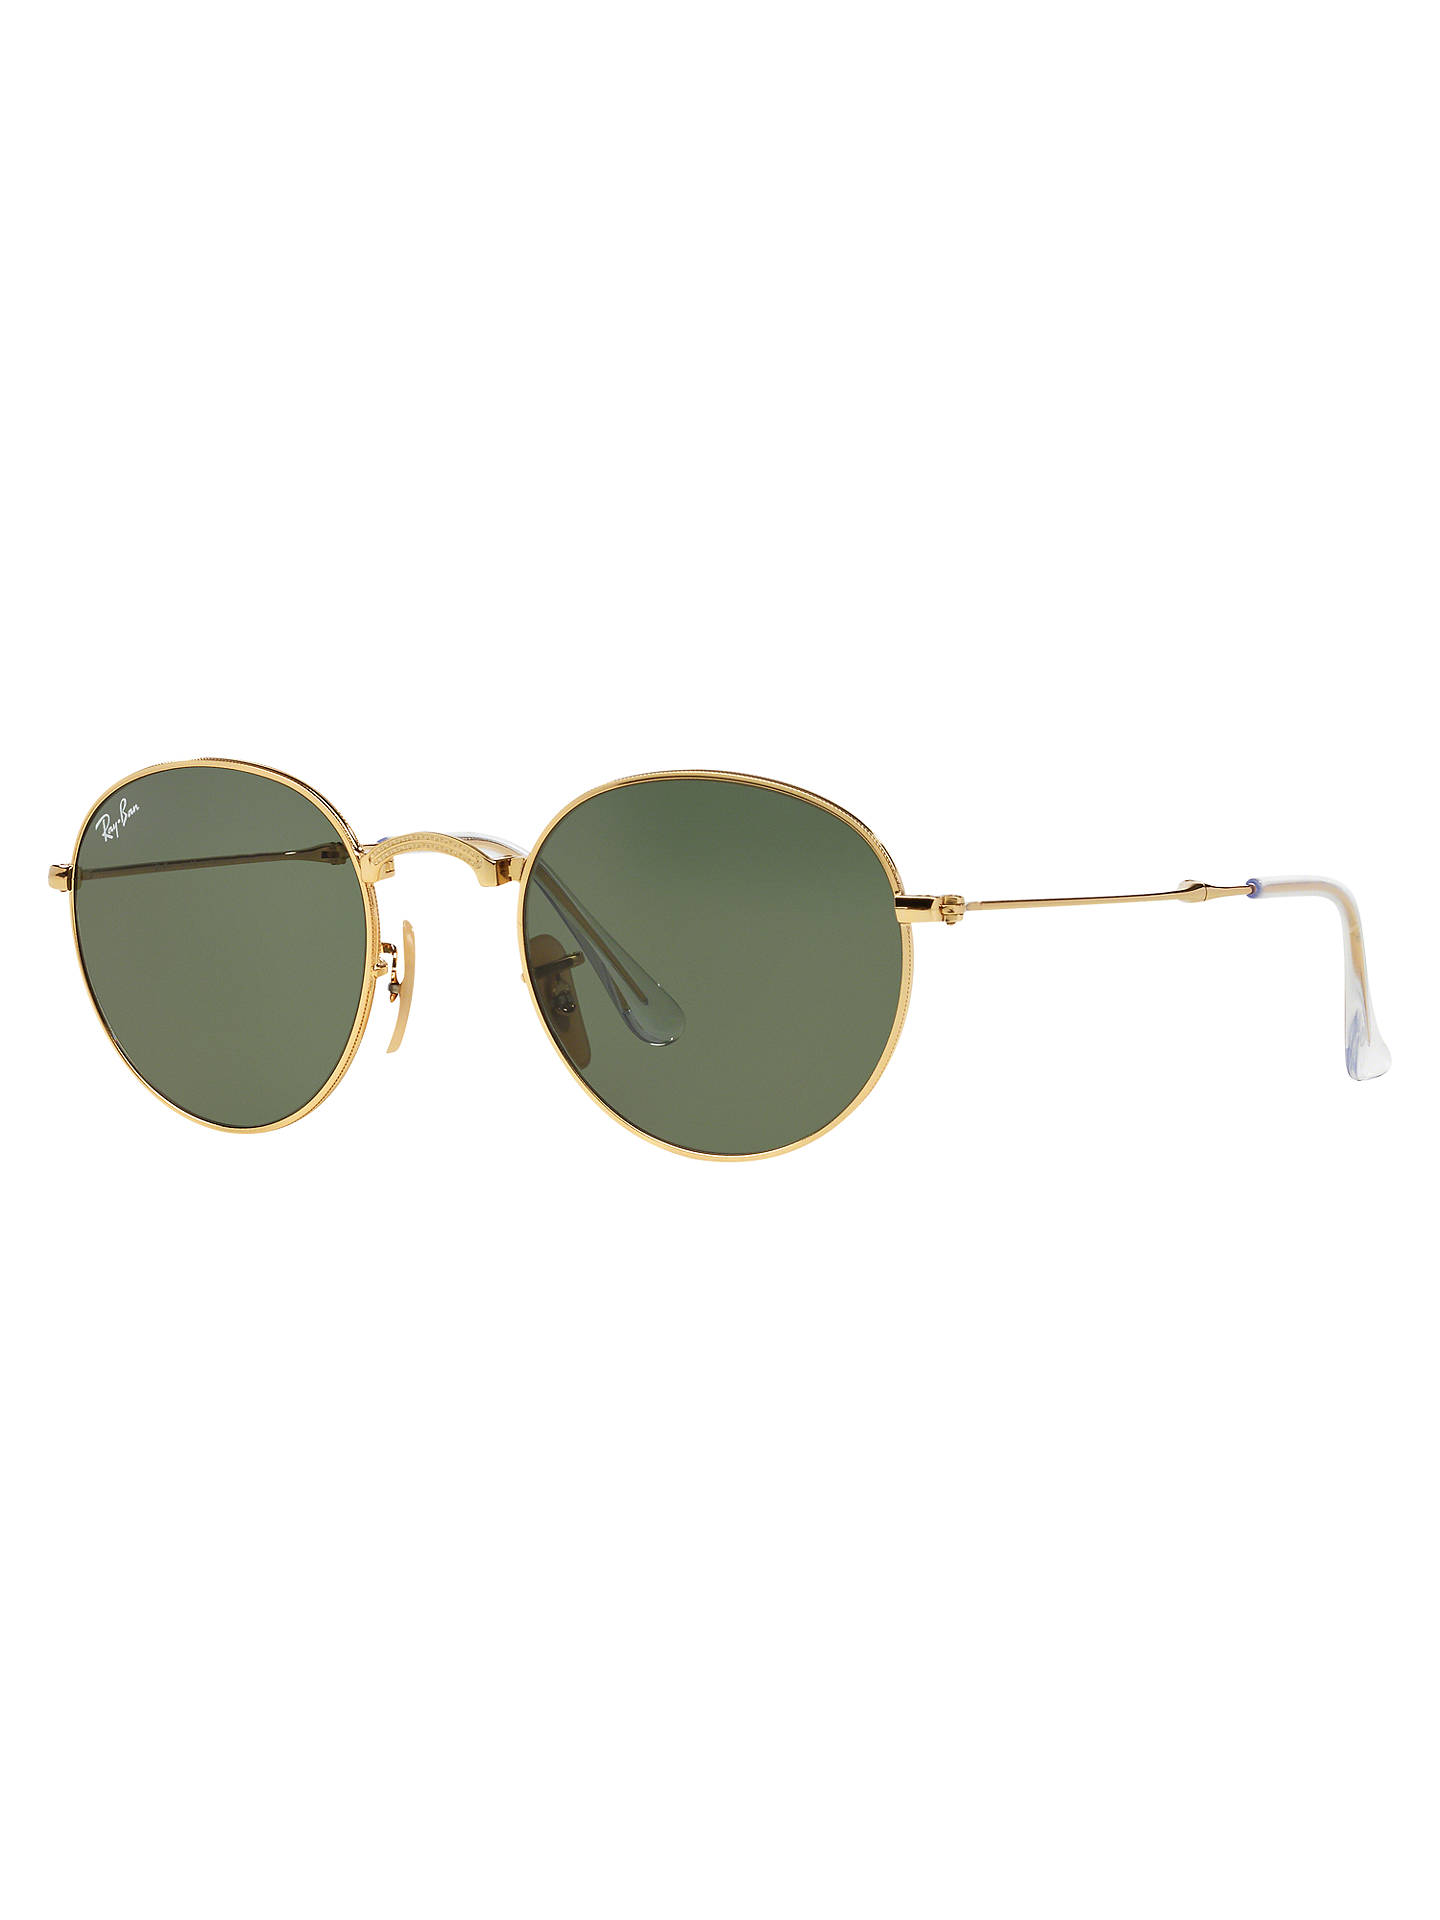 1094a318d2 Buy Ray-Ban RB3532 Round Metal Folding Sunglasses